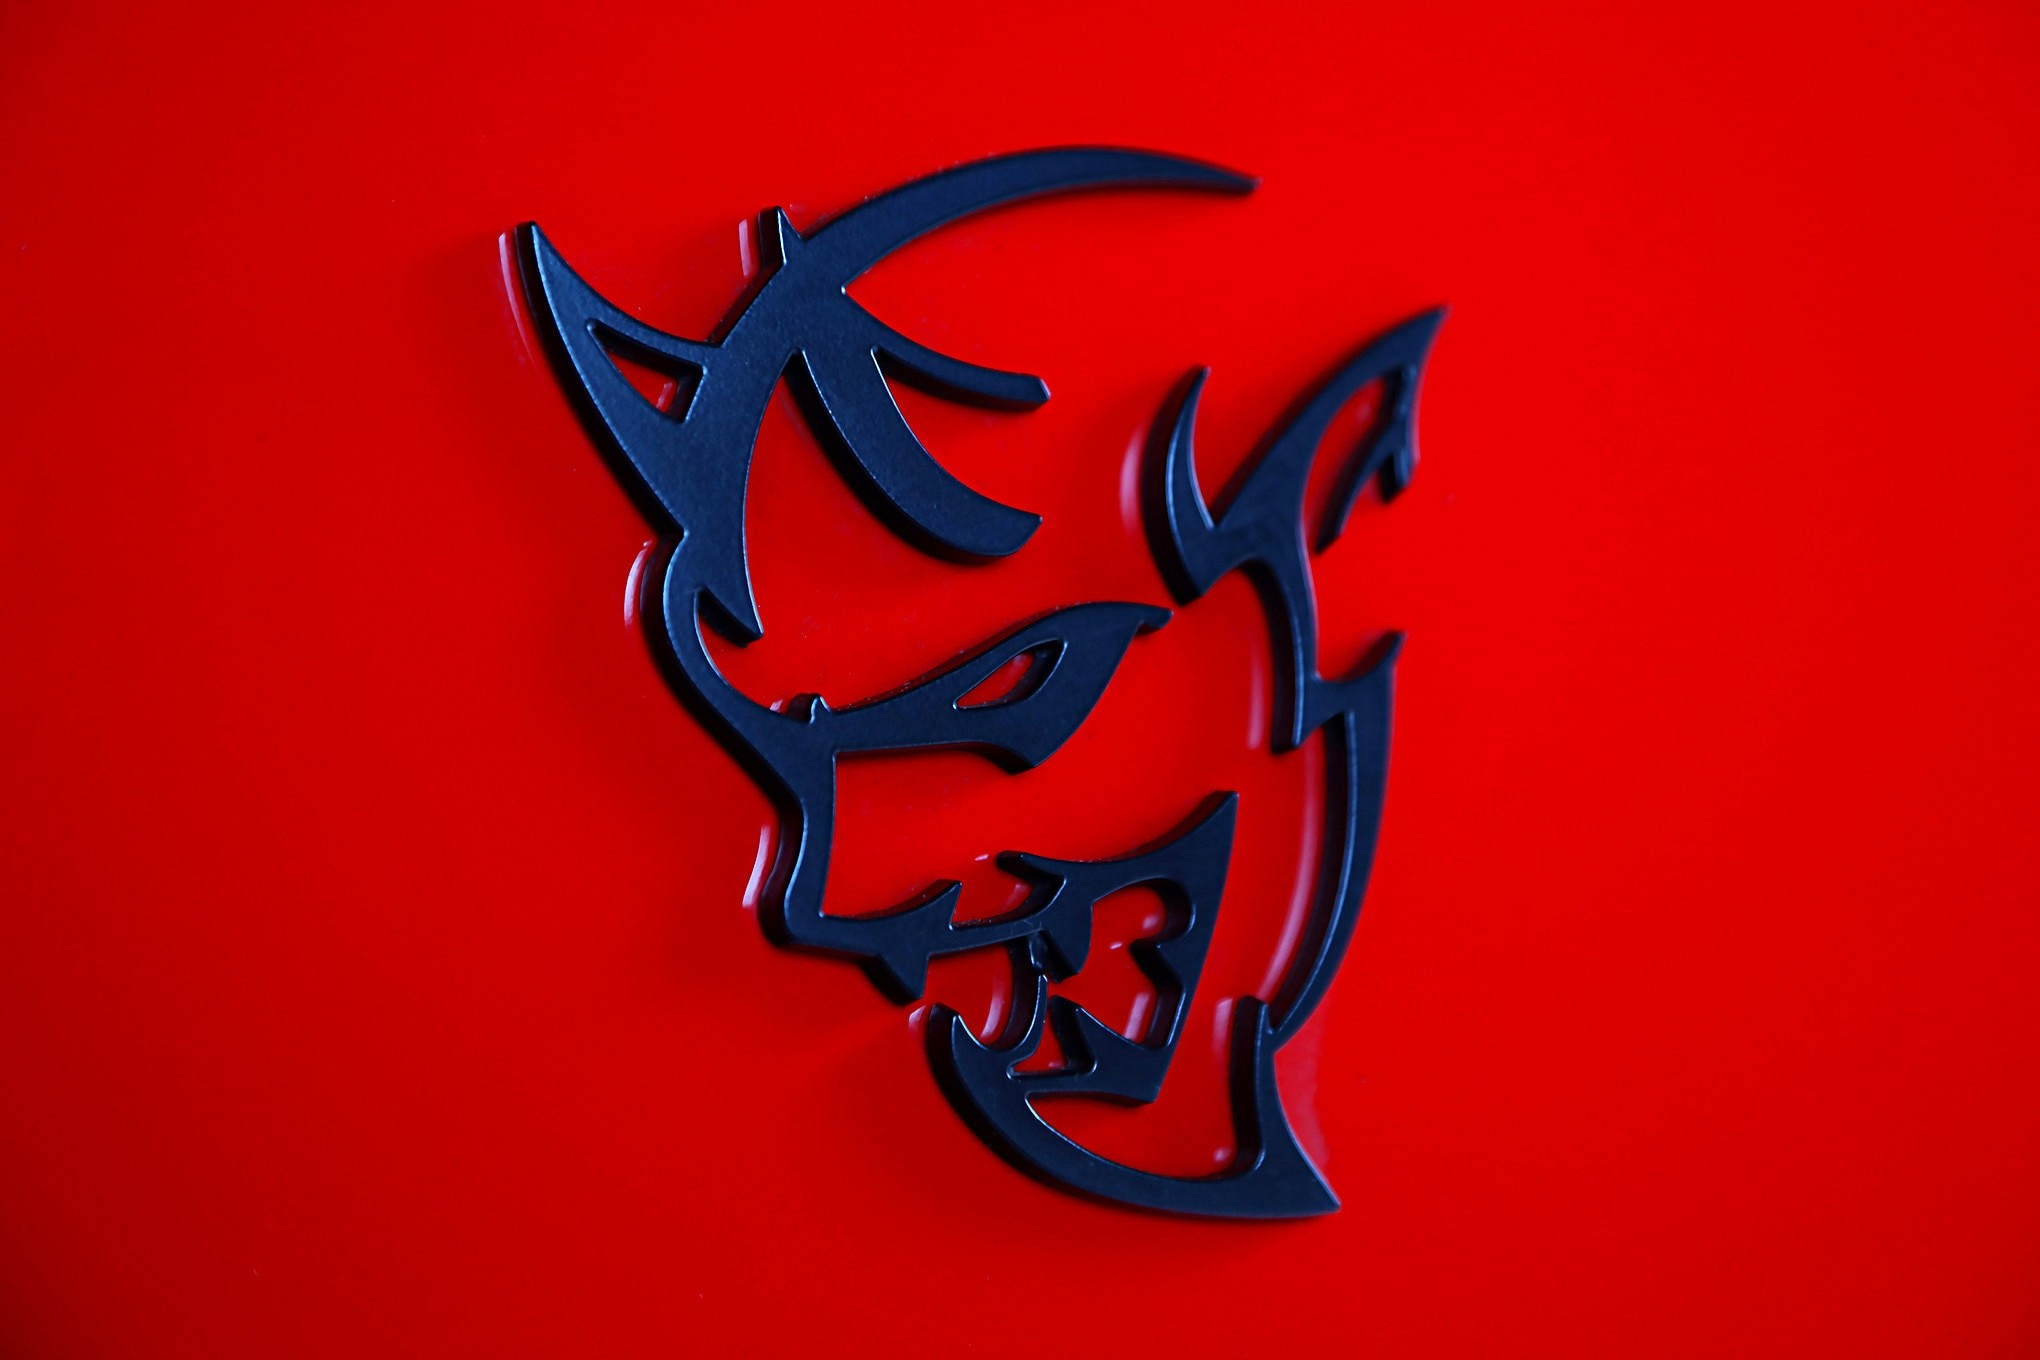 dodge demon symbol  Five Cars that are Slower than the Dodge Demon - Hot Rod ..